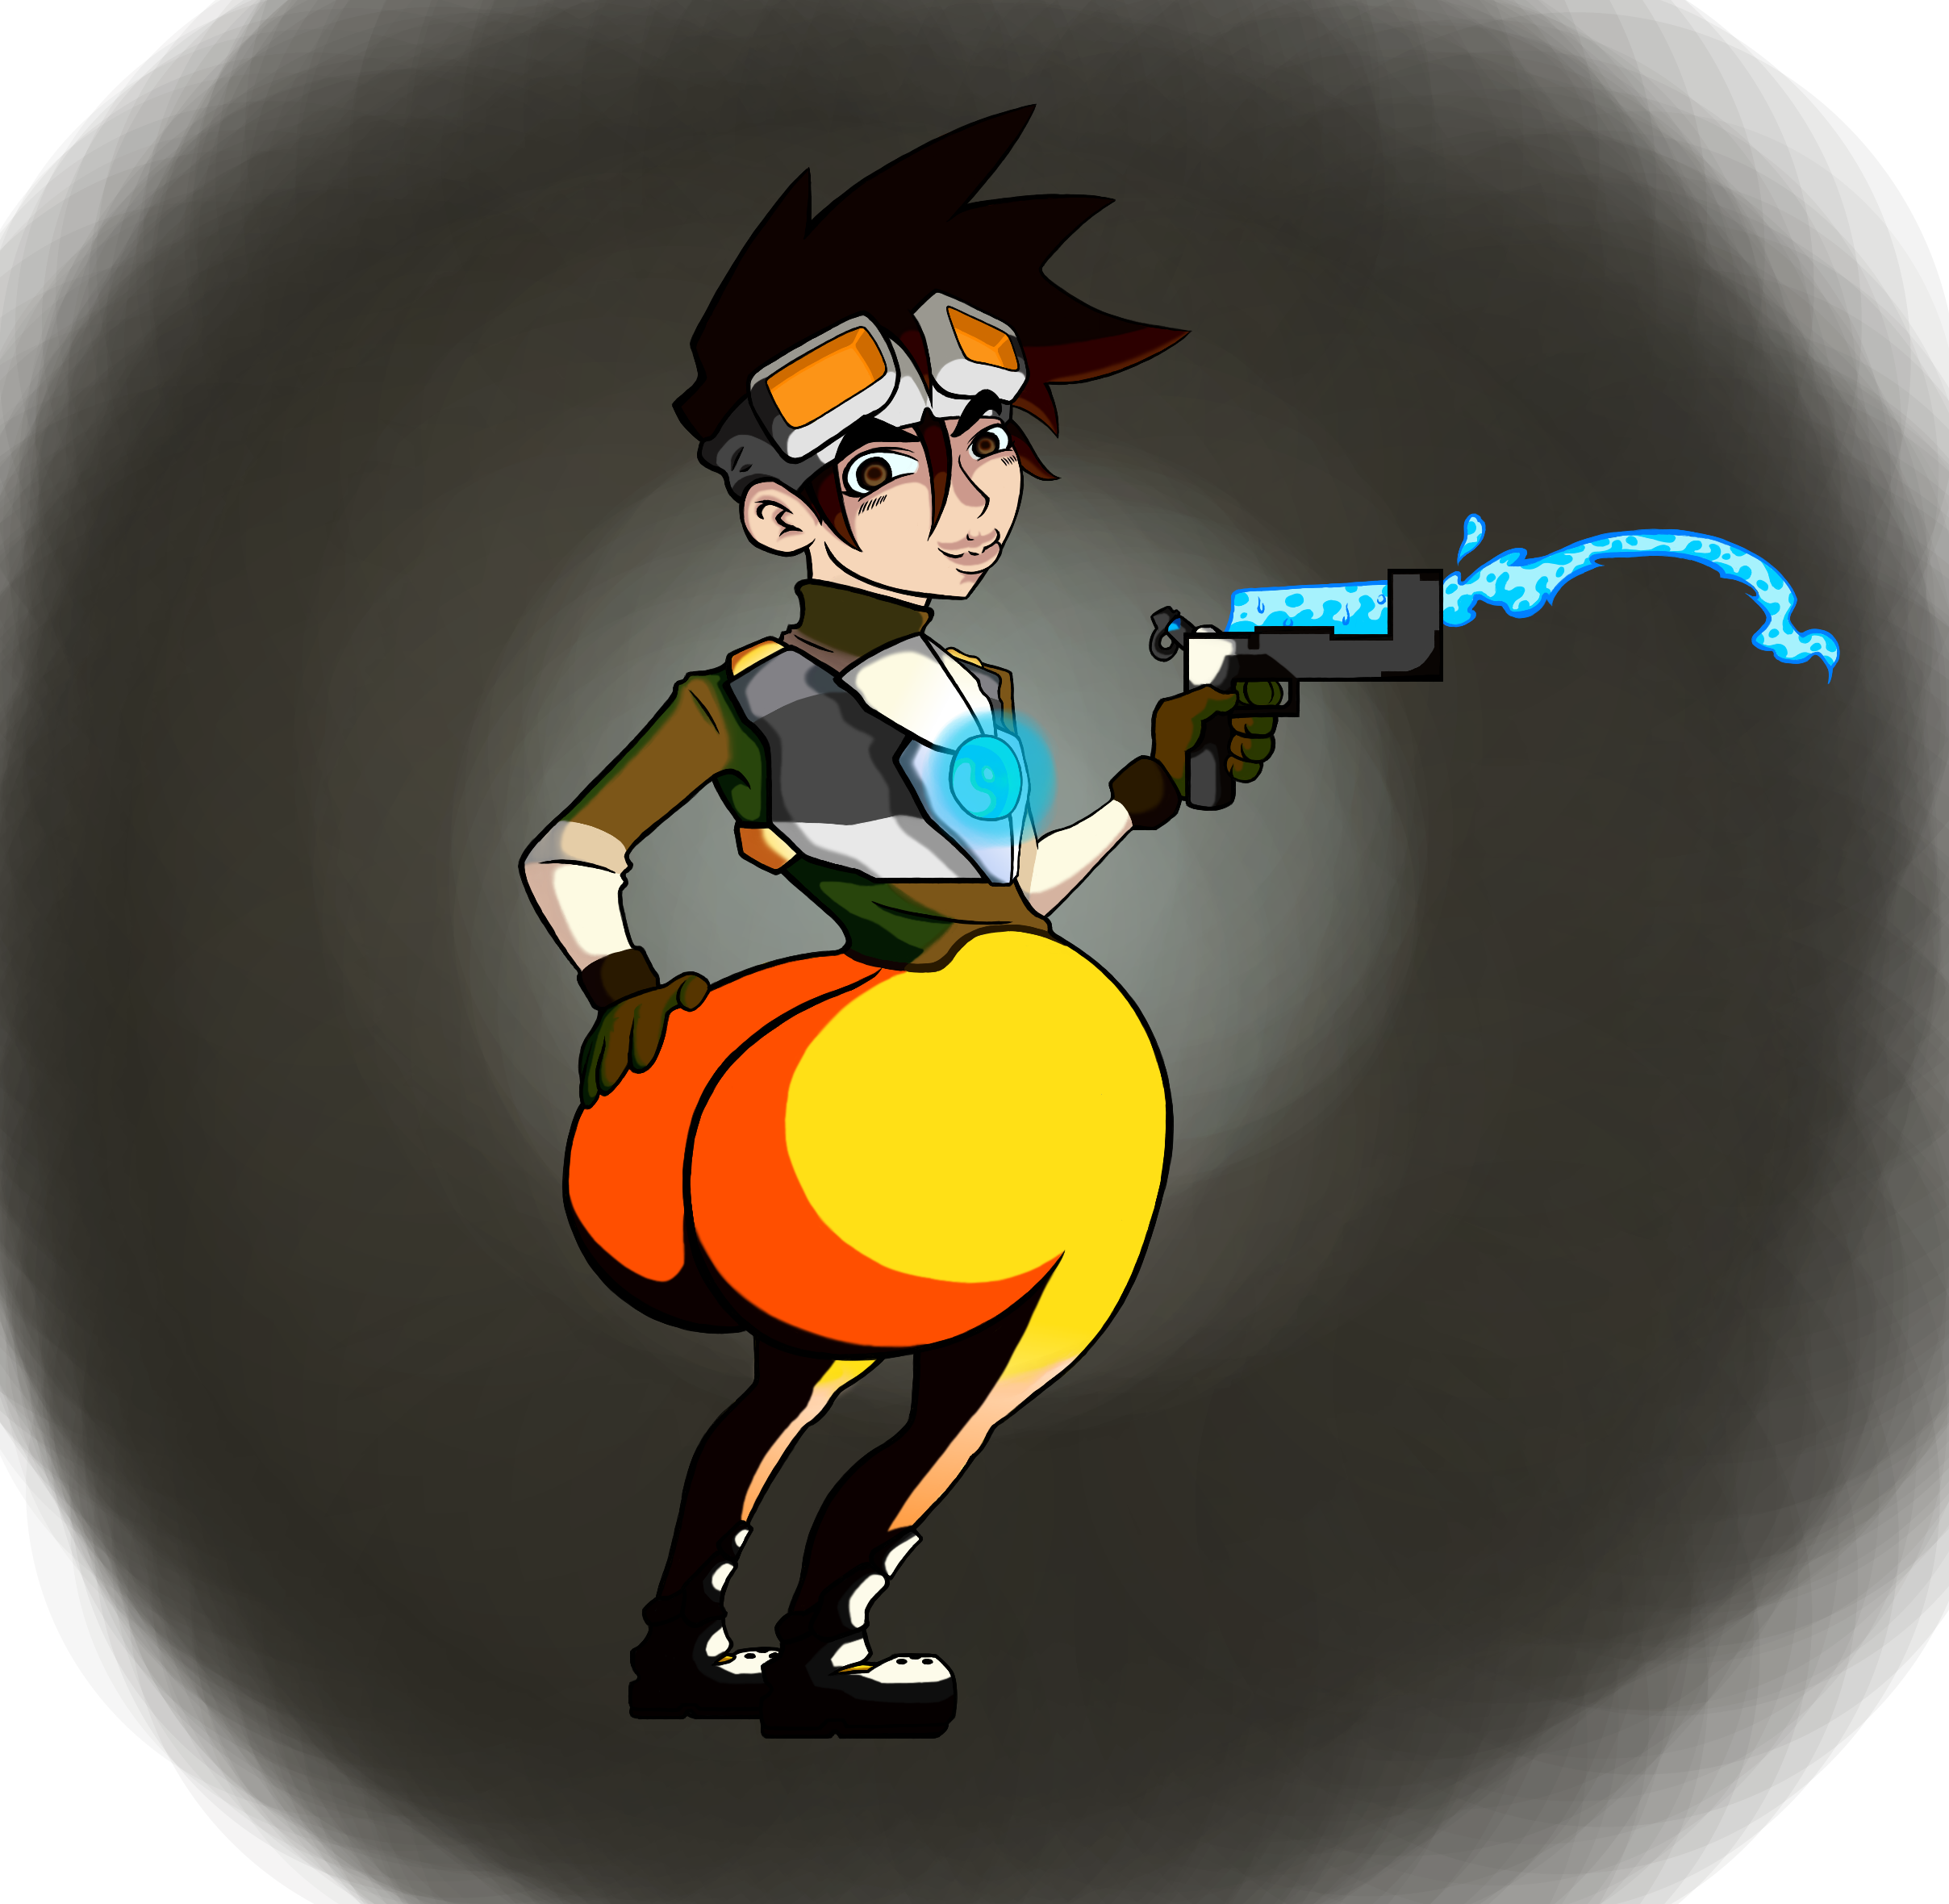 Tracer from memory by adamlink7 on Newgrounds